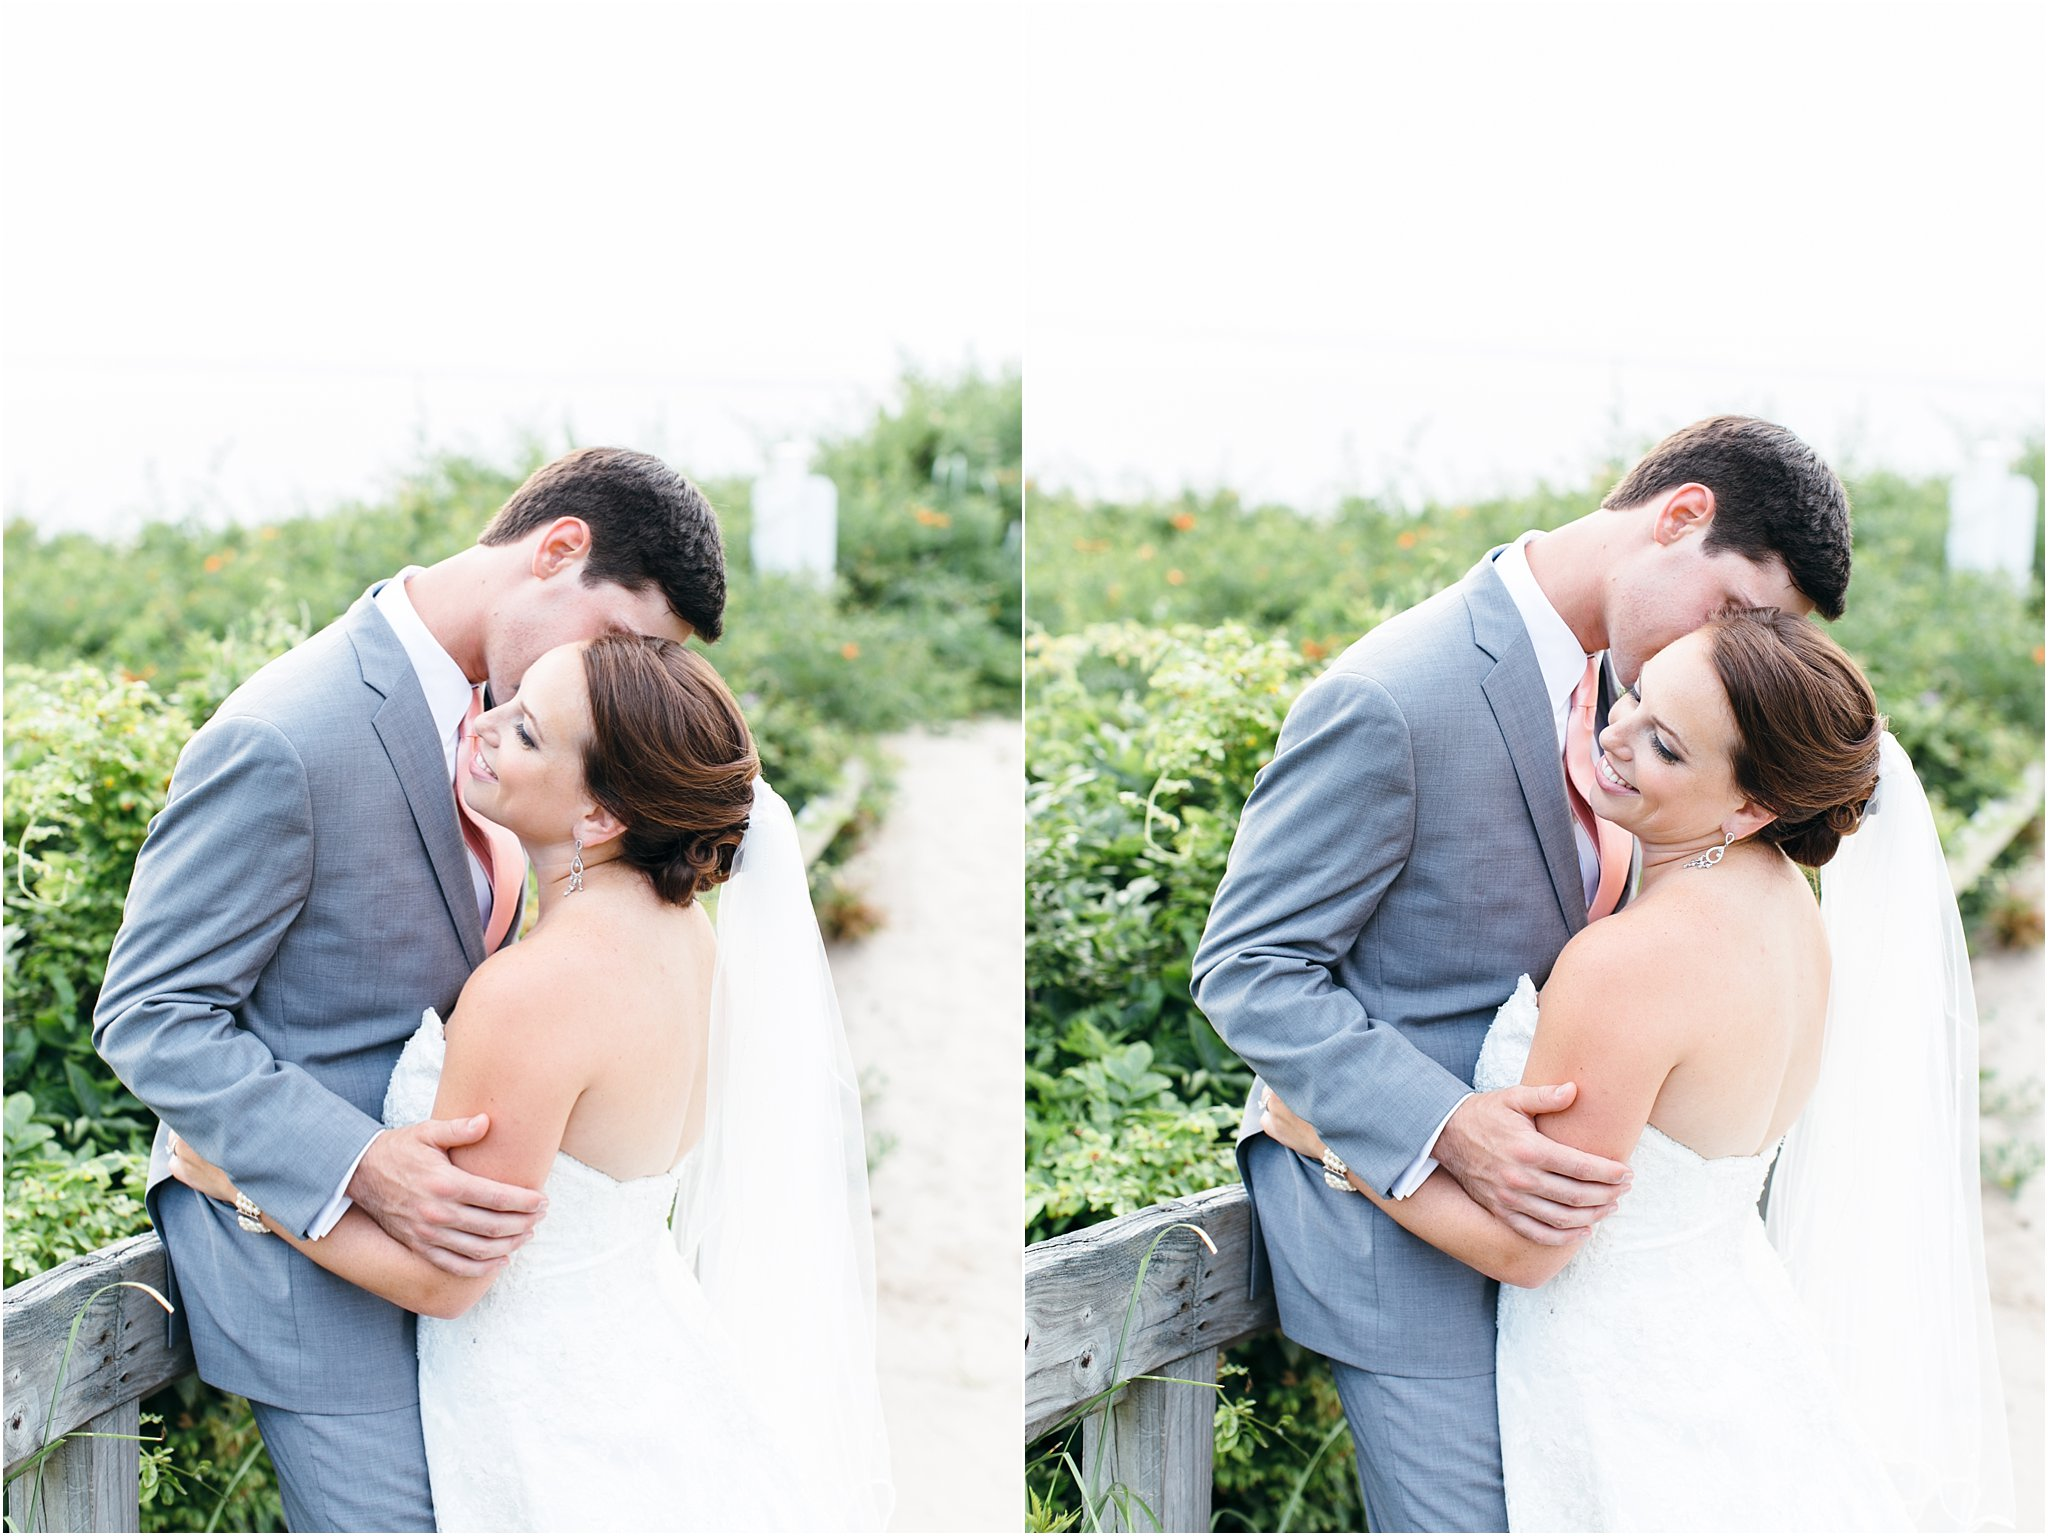 jessica_ryan_photography_wedding_photography_virginiabeach_virginia_candid_authentic_wedding_portraits_marina_shores_yacht_club_chesapeake_bay_1912